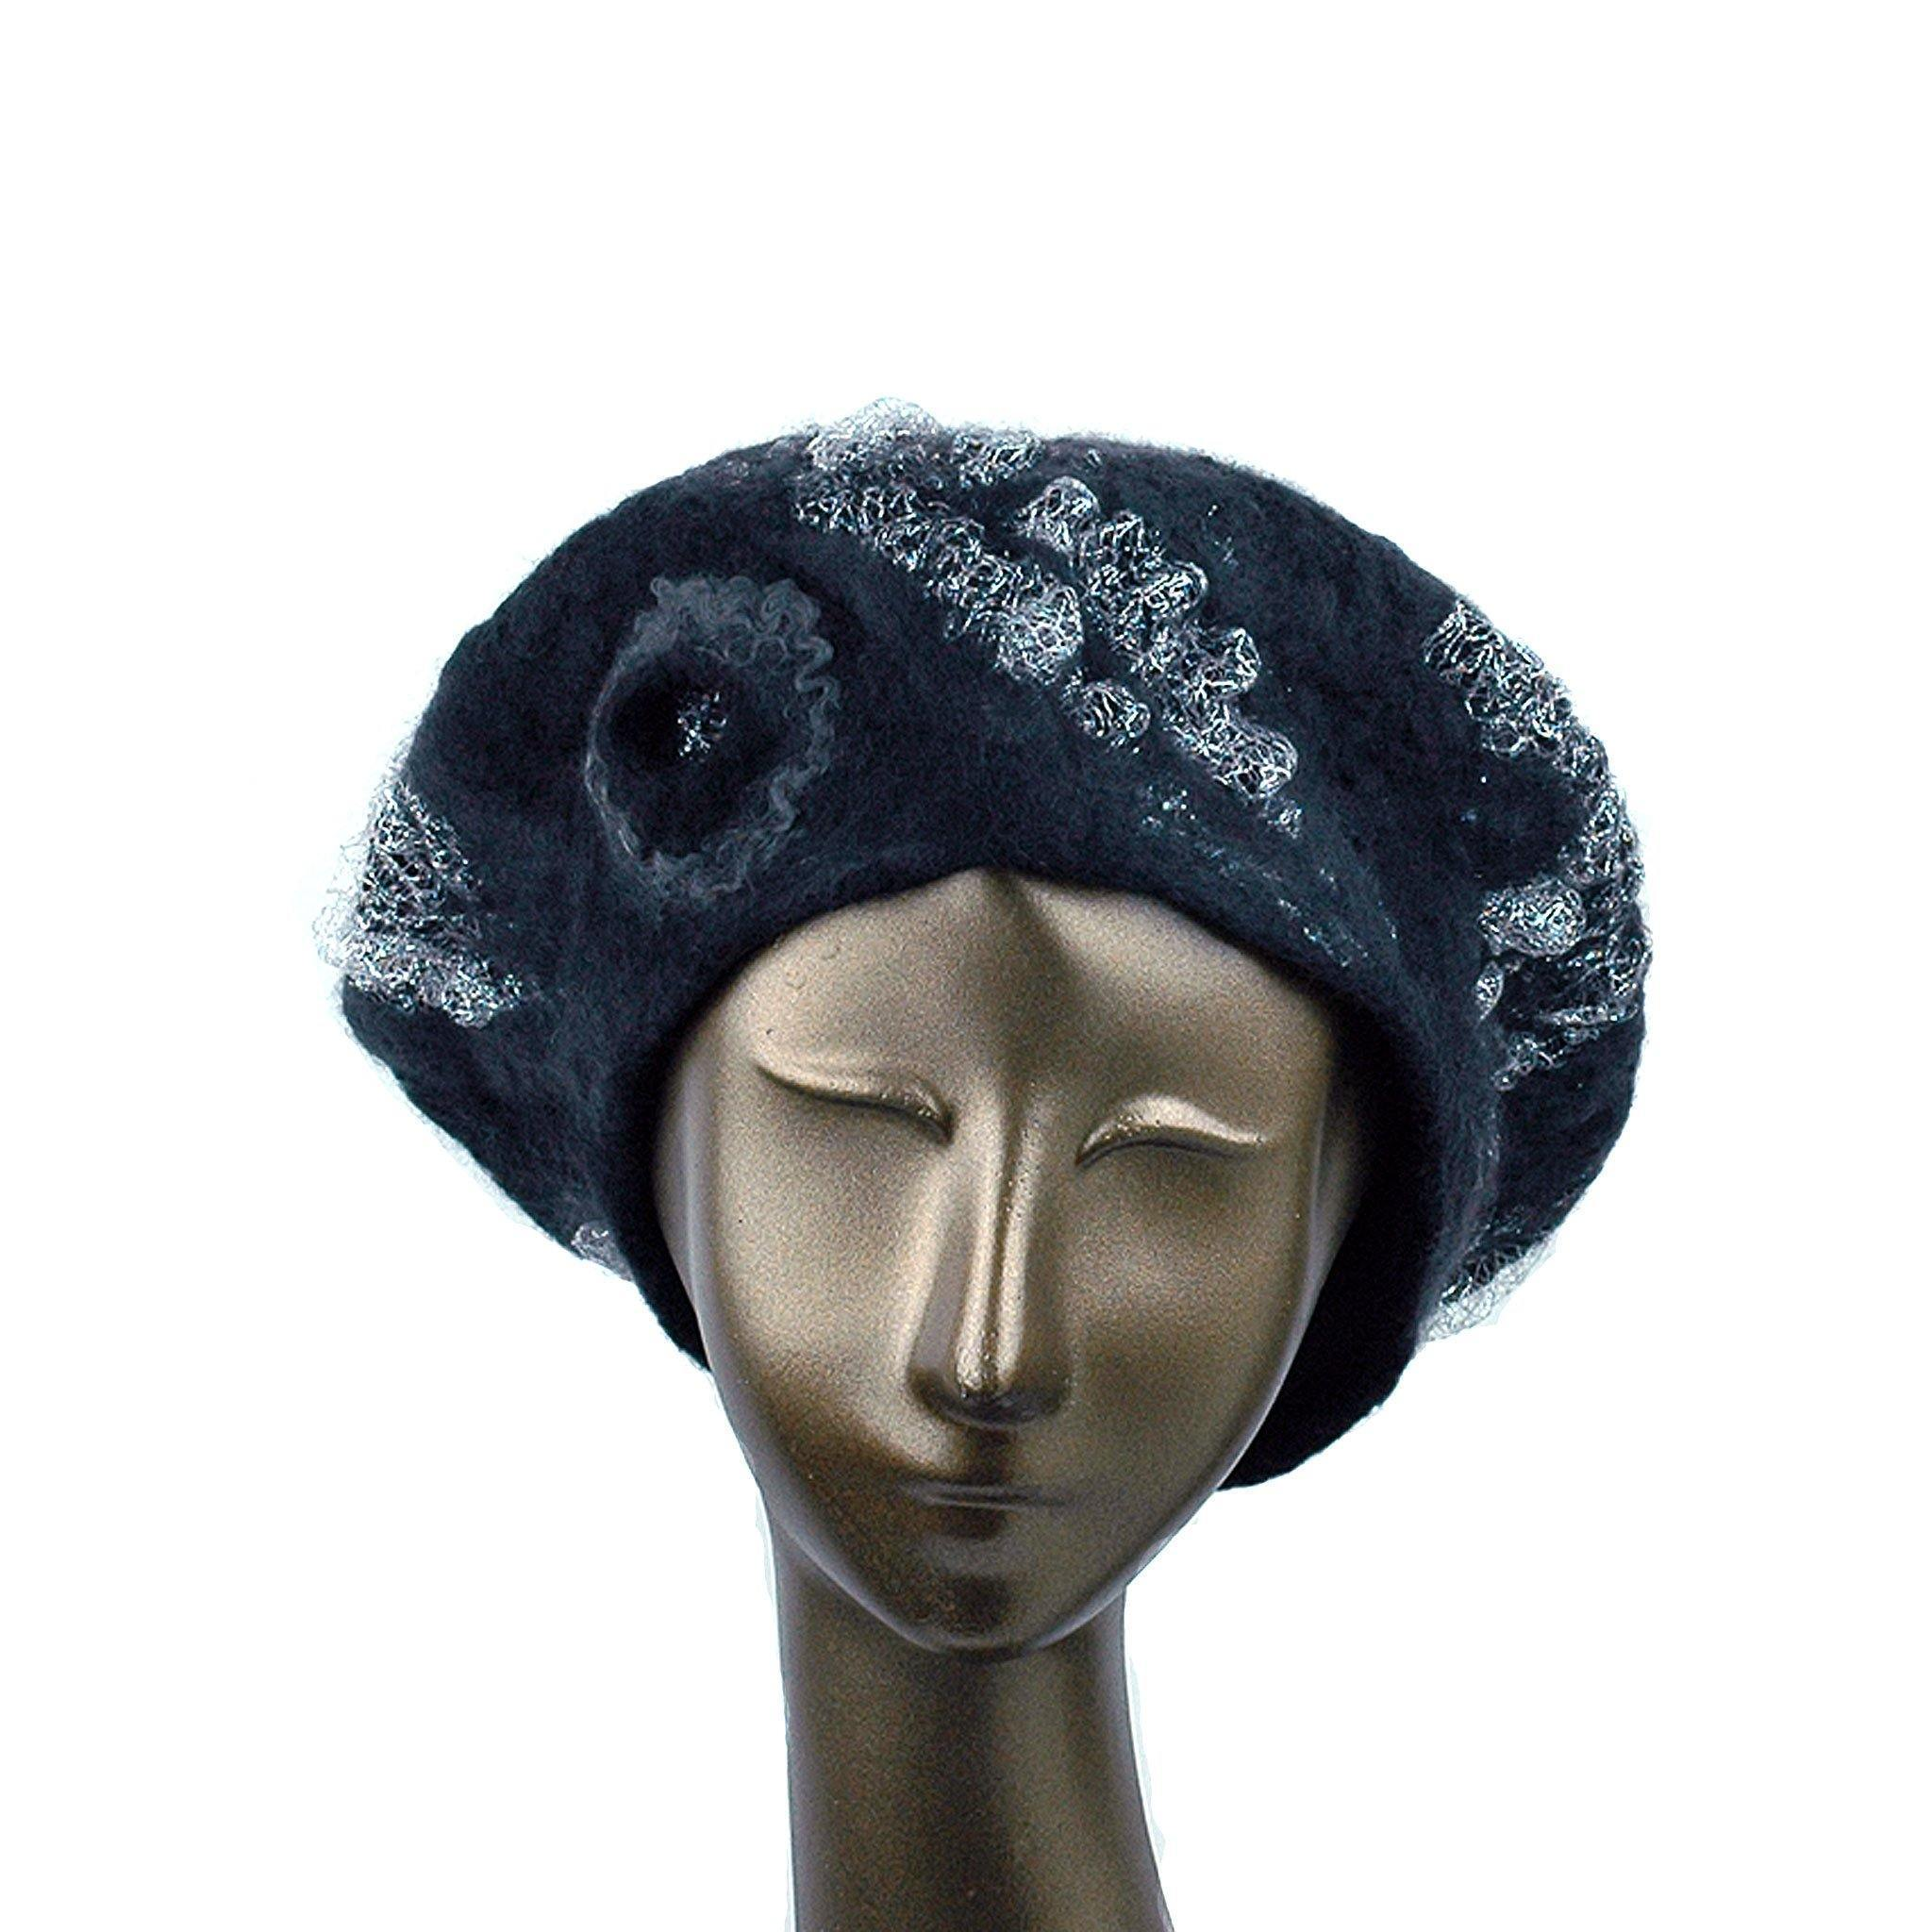 Charcoal Black Beret with Silver Nunofelt - front view